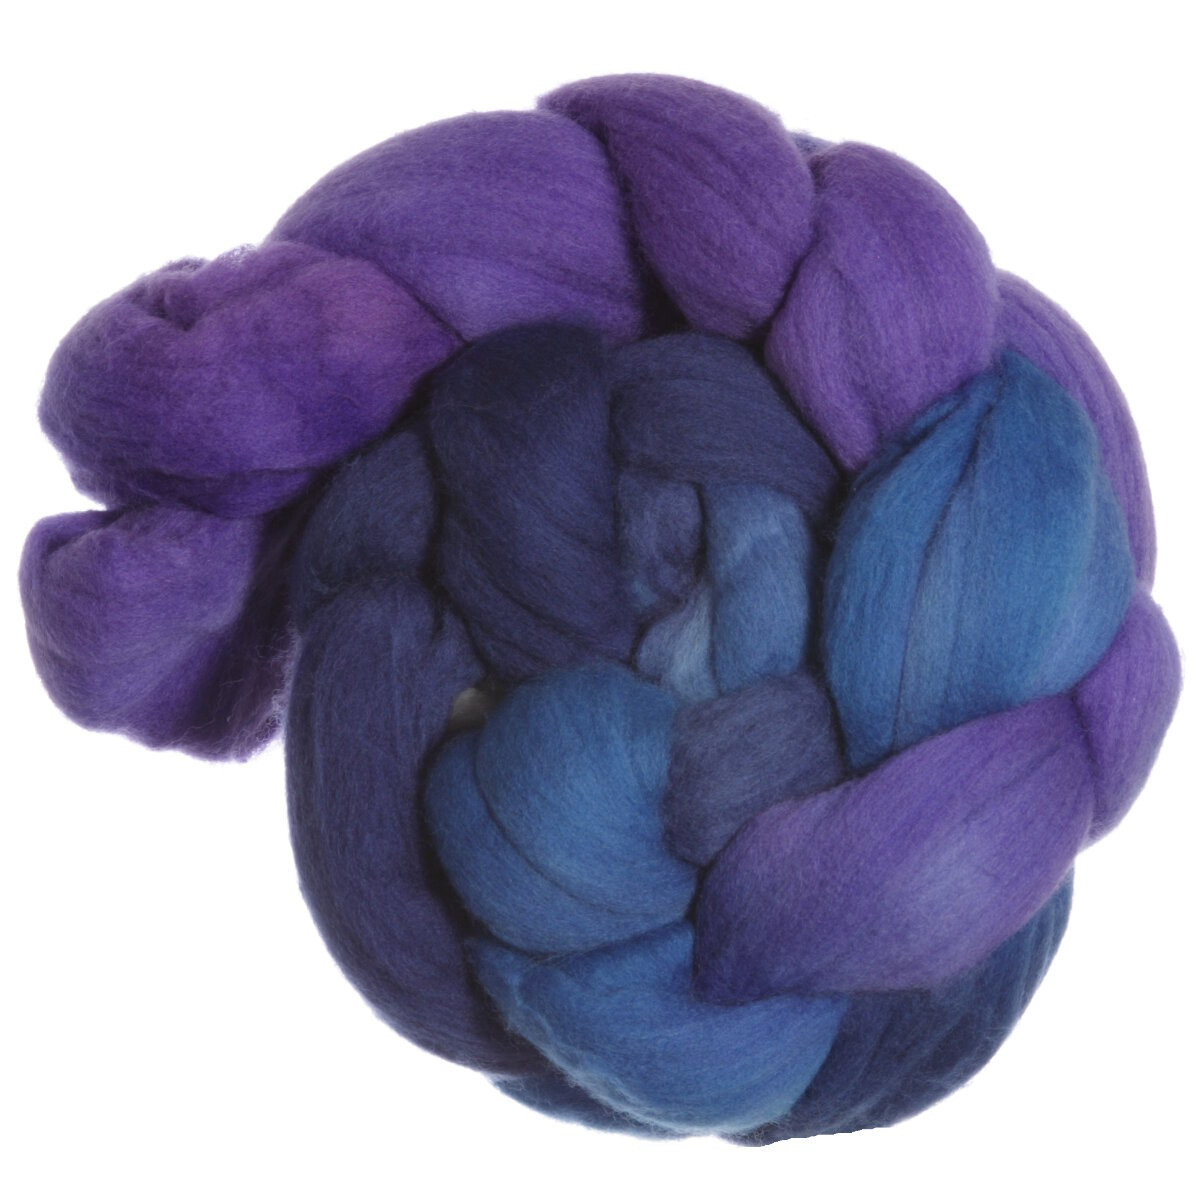 New Manos Del Uruguay Merino Roving Yarn 9886 Bluejay at Wool Roving Yarn Of Awesome 40 Pictures Wool Roving Yarn